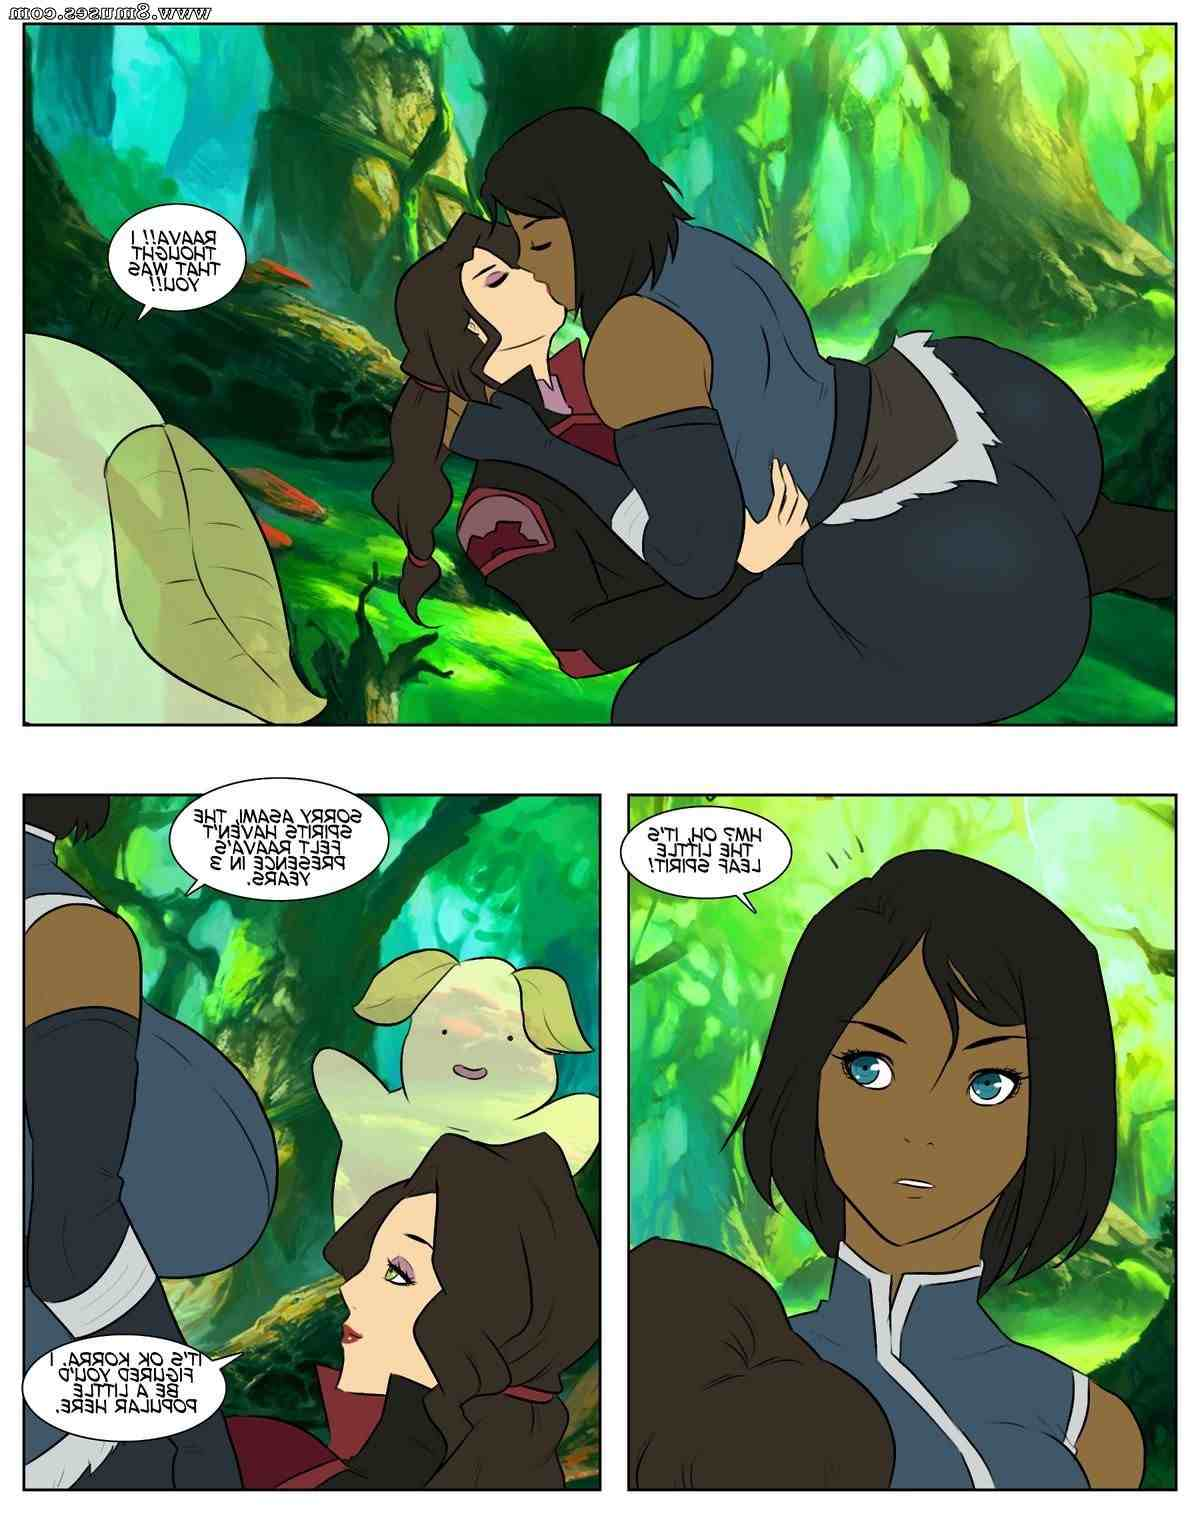 comics/porn-comics-all/Jay-Marvel-Comics/Korrasami-A-Vacation Korrasami_-_A_Vacation__8muses_-_Sex_and_Porn_Comics_2.jpg